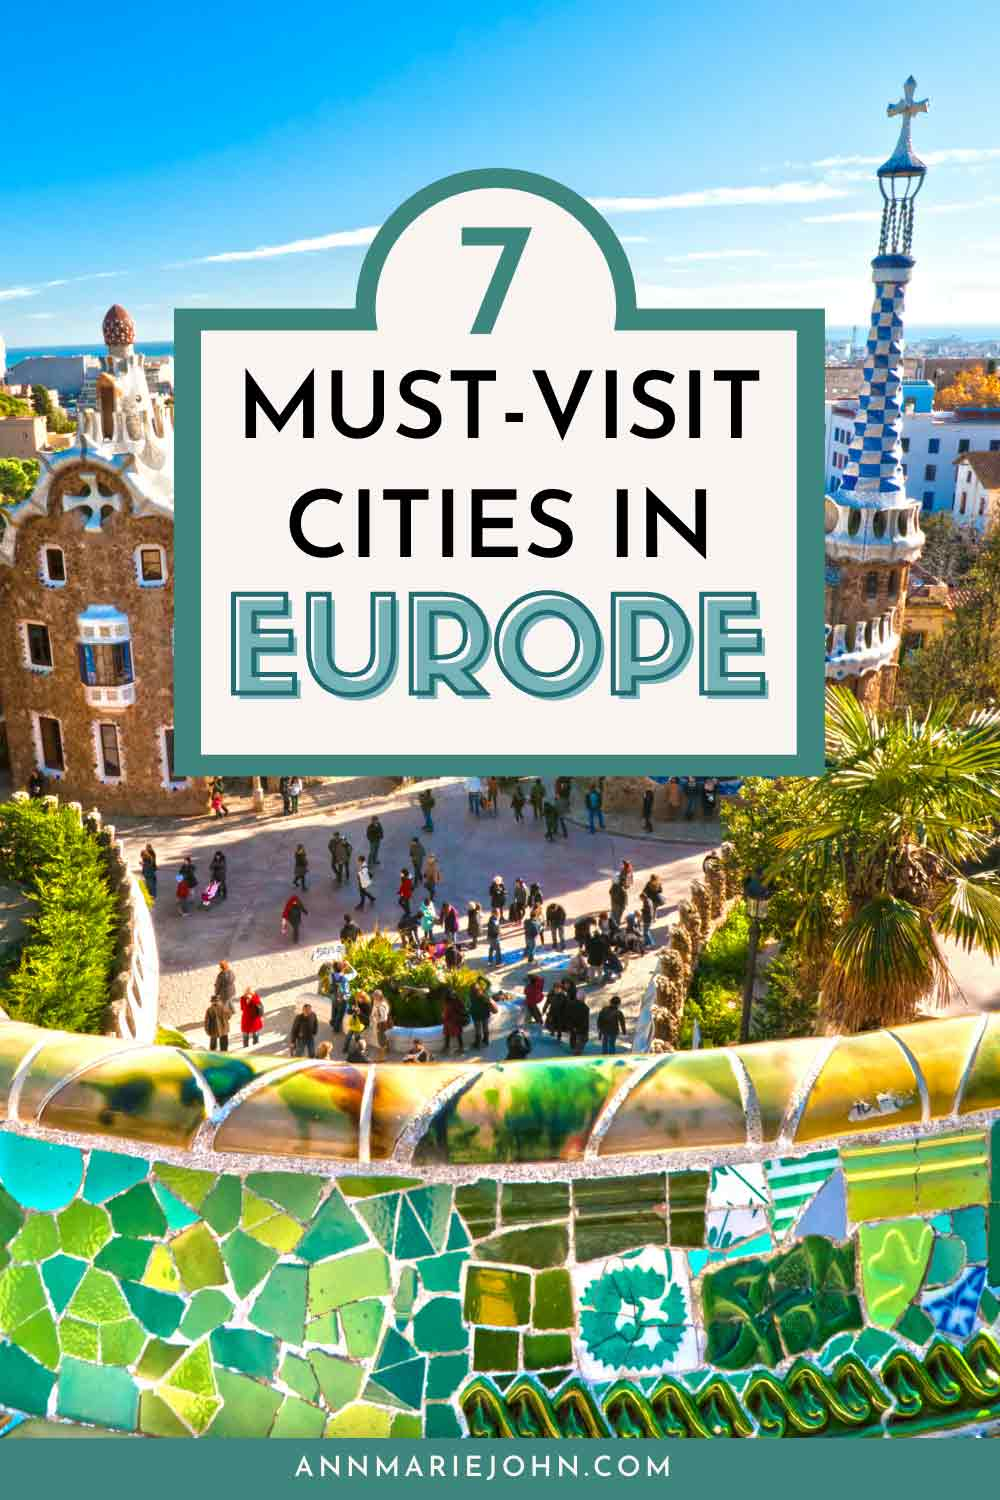 Cities In Europe You Have To Visit